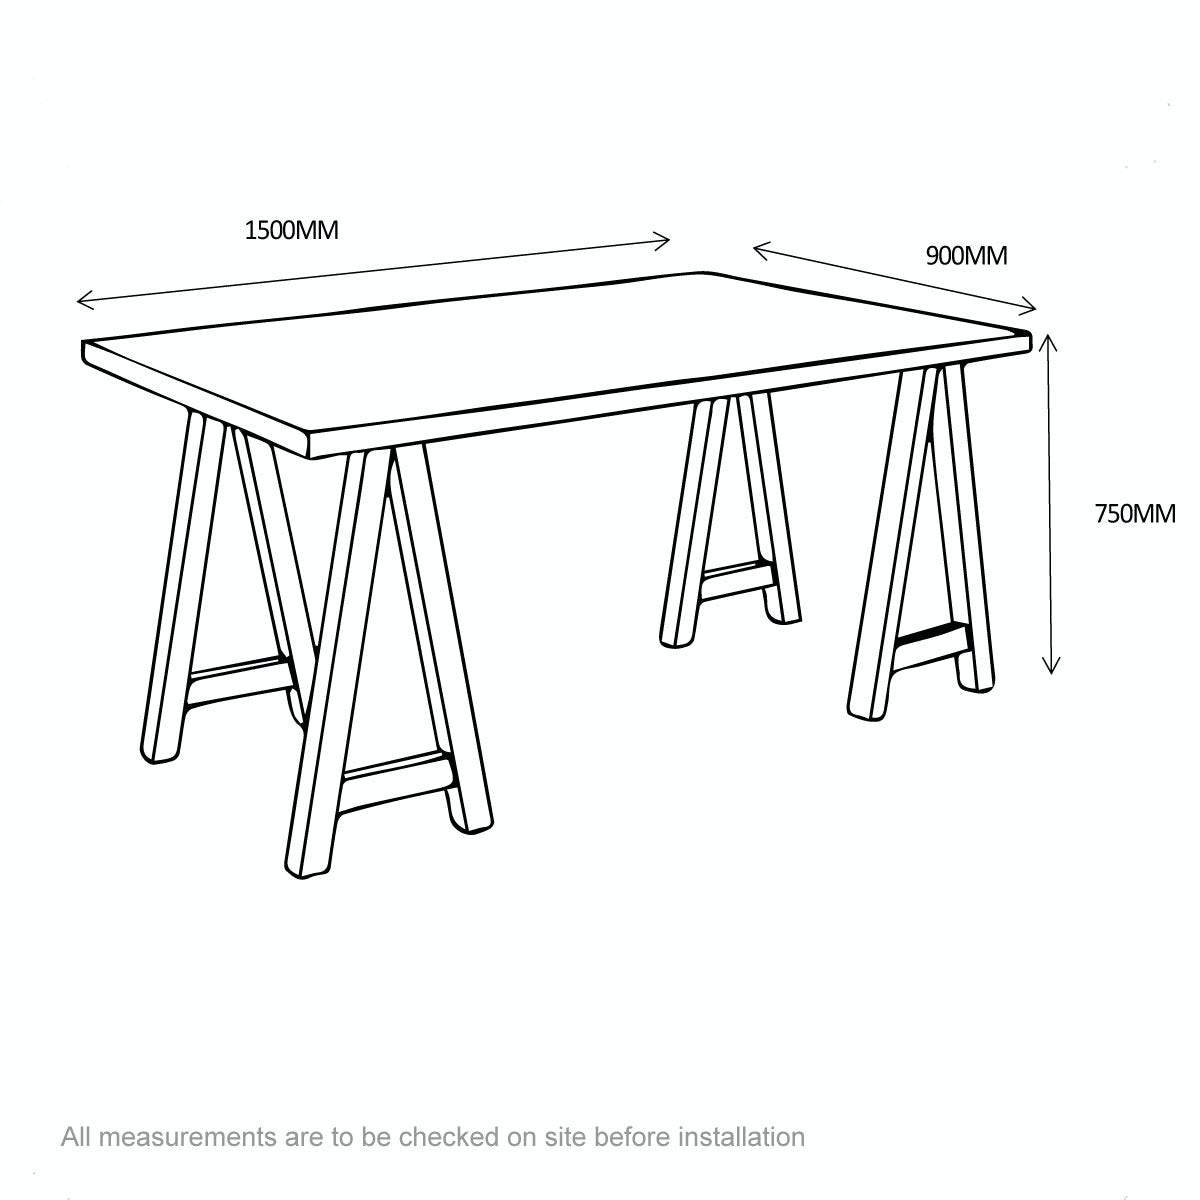 Dimensions for Hudson oak trestle table